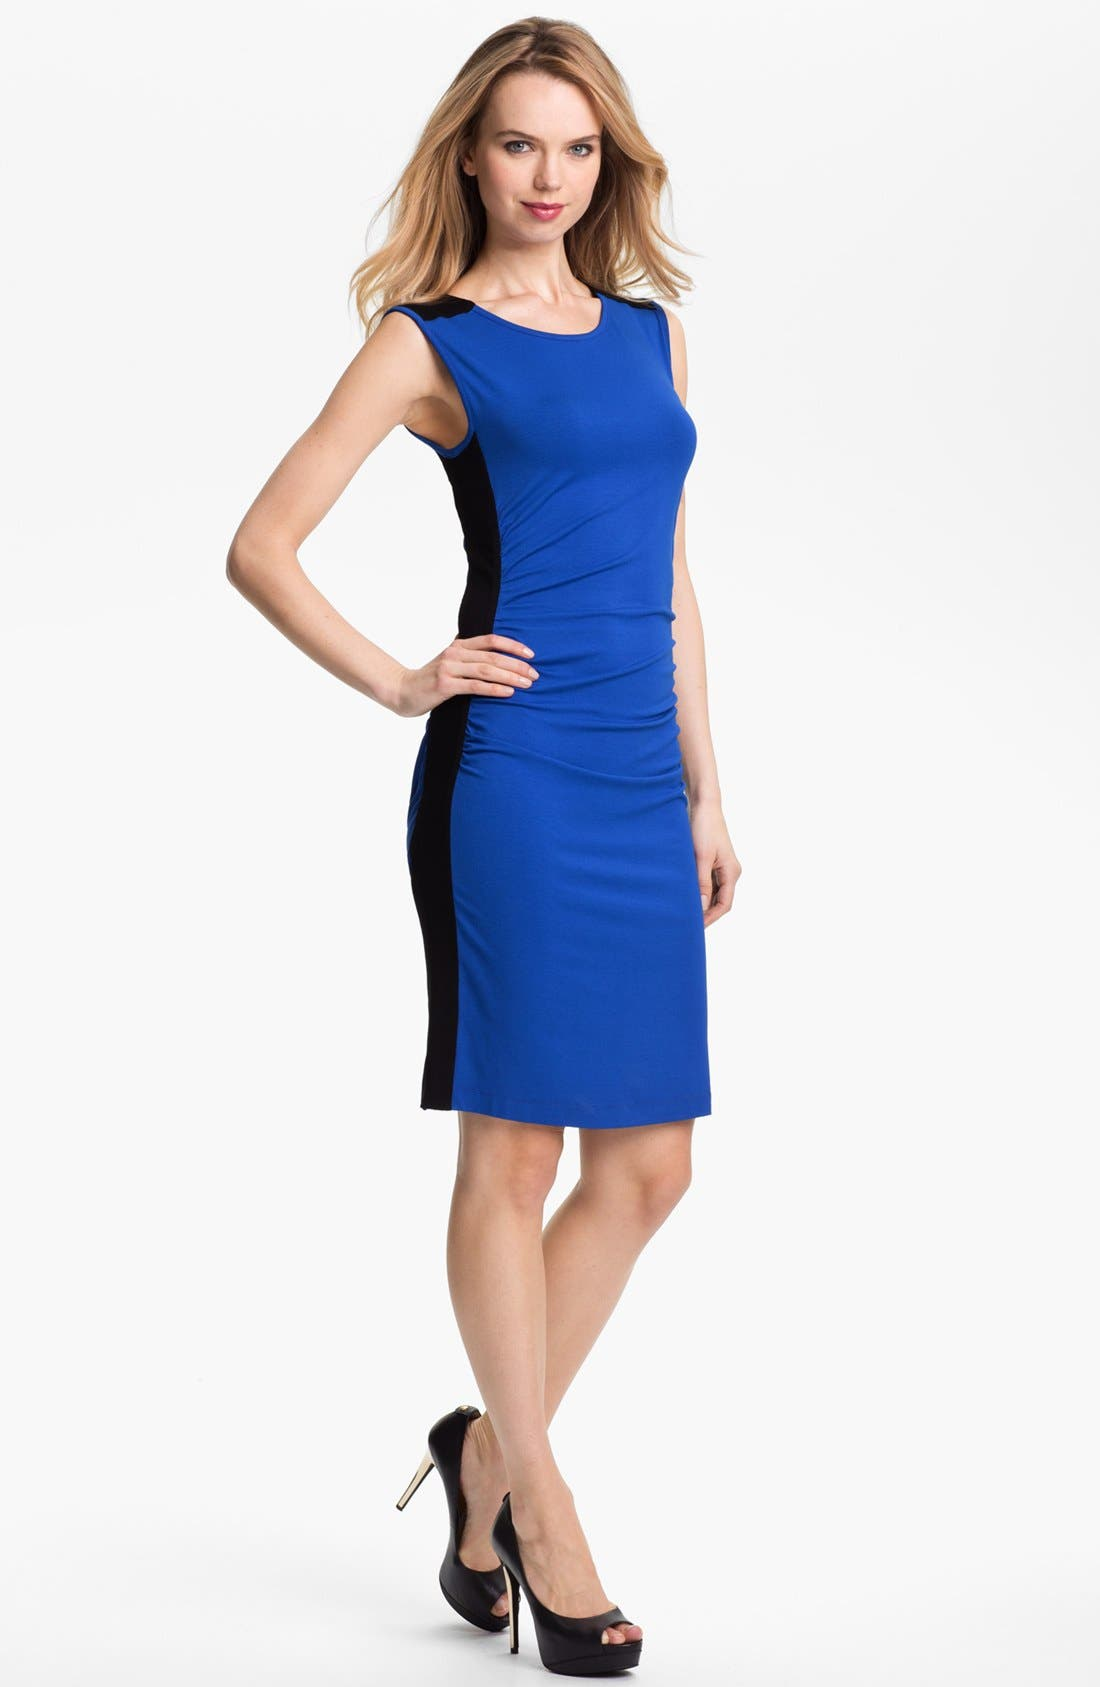 Alternate Image 1 Selected - Vince Camuto Colorblock Sleeveless Dress